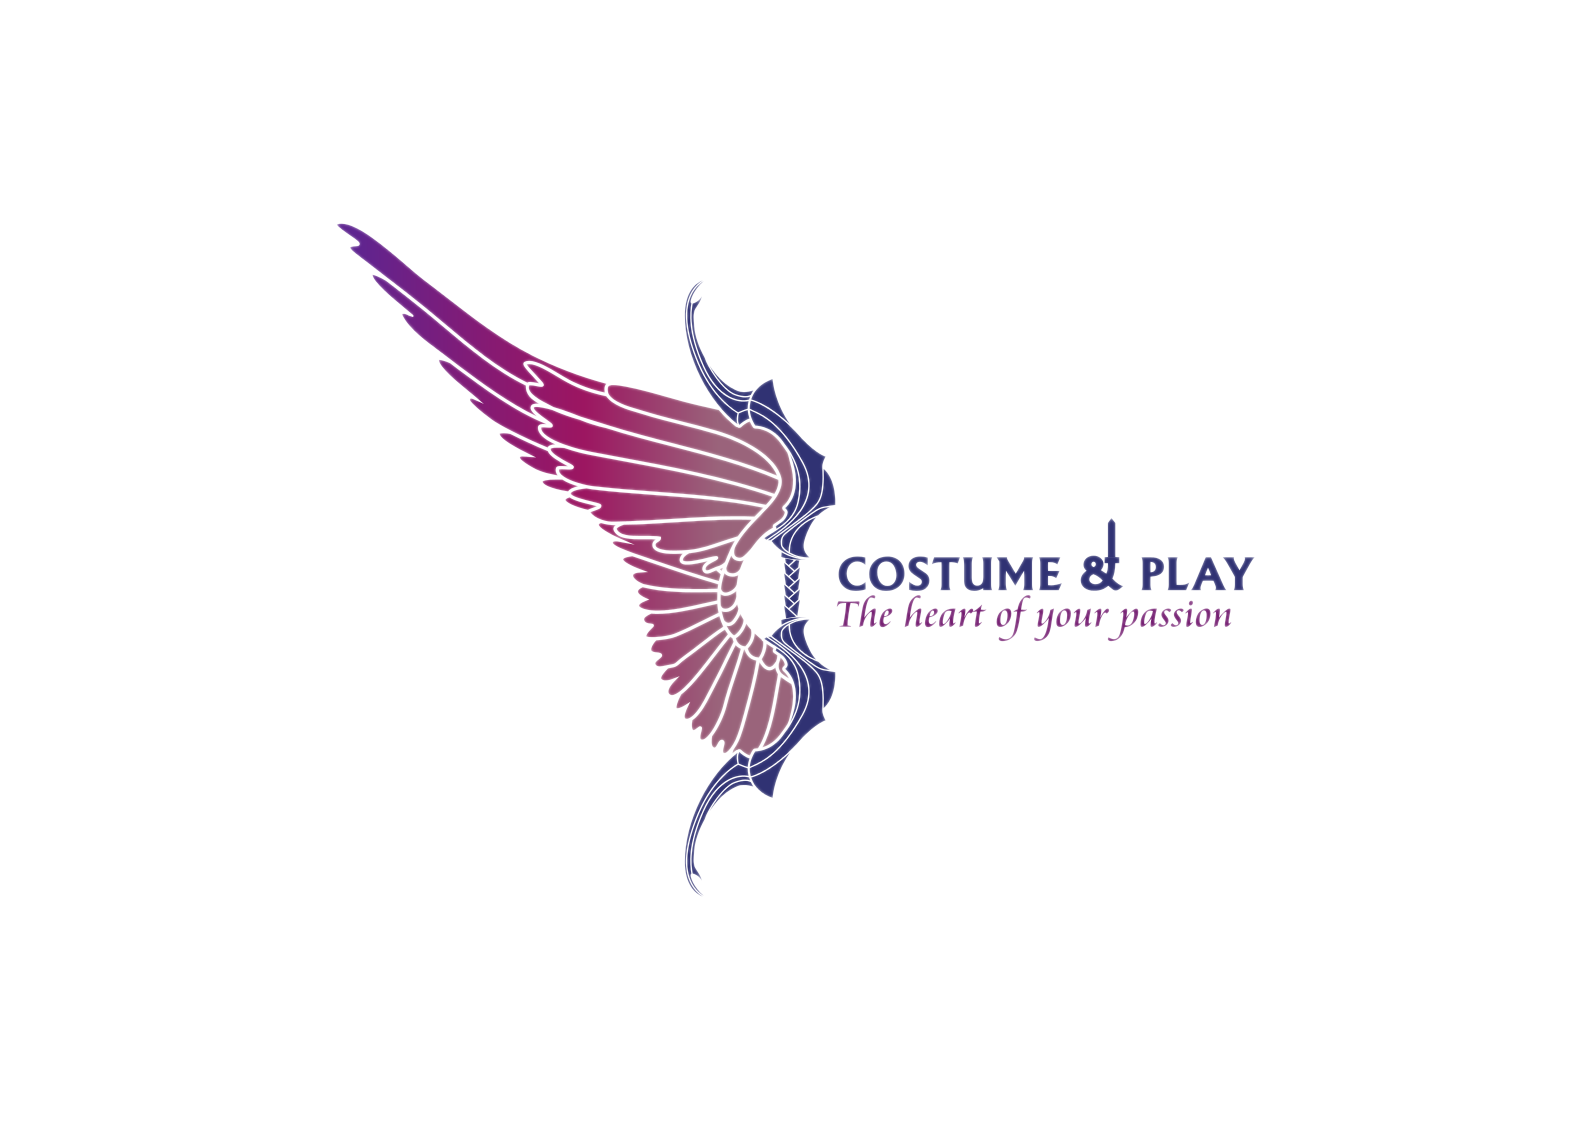 costume and play logo